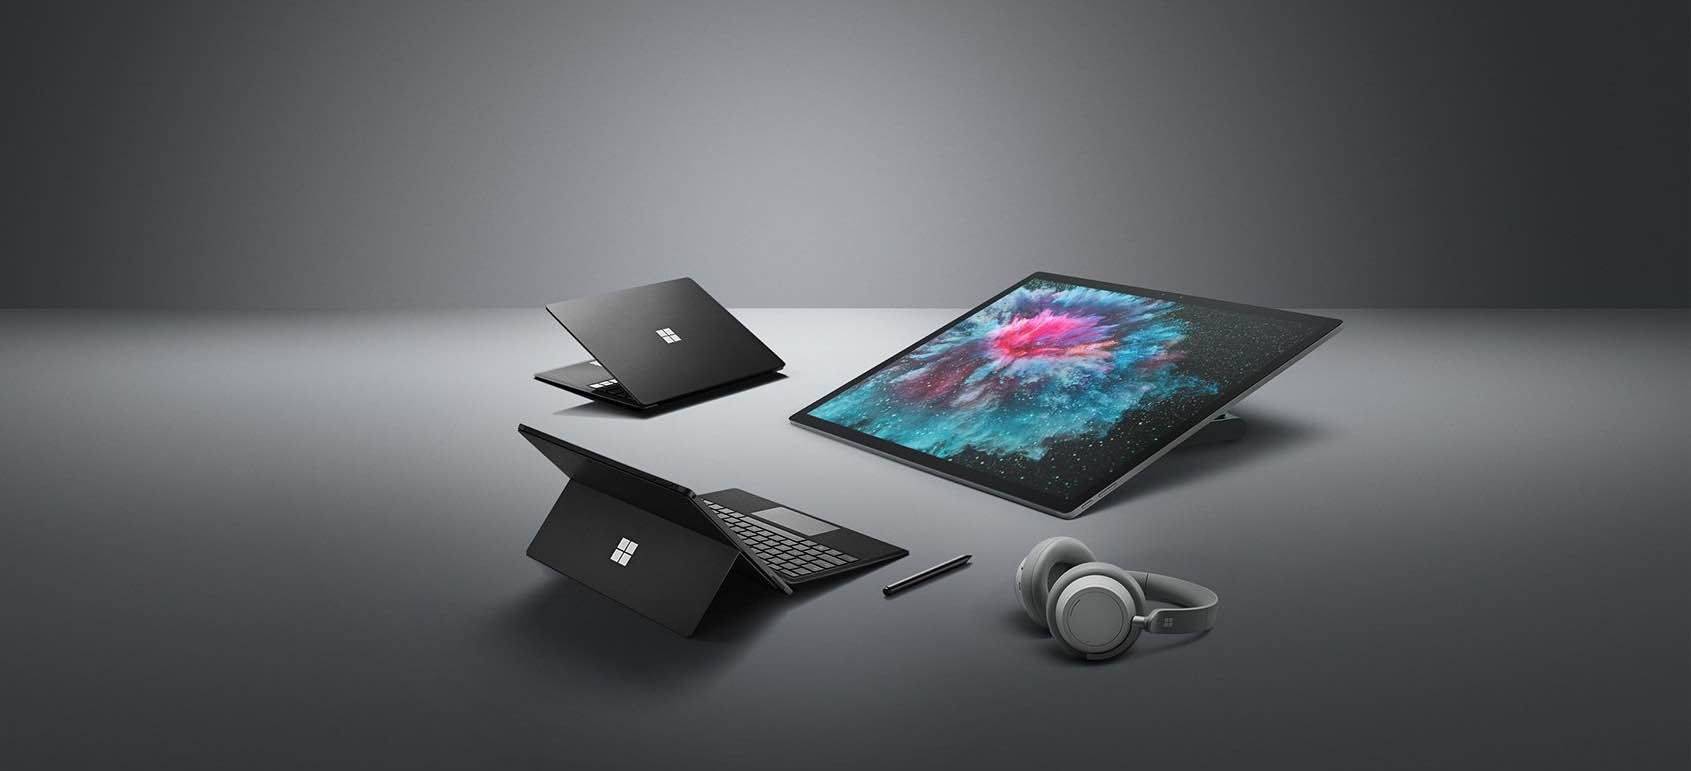 An image showing a family of new or updated Surface products for 2018